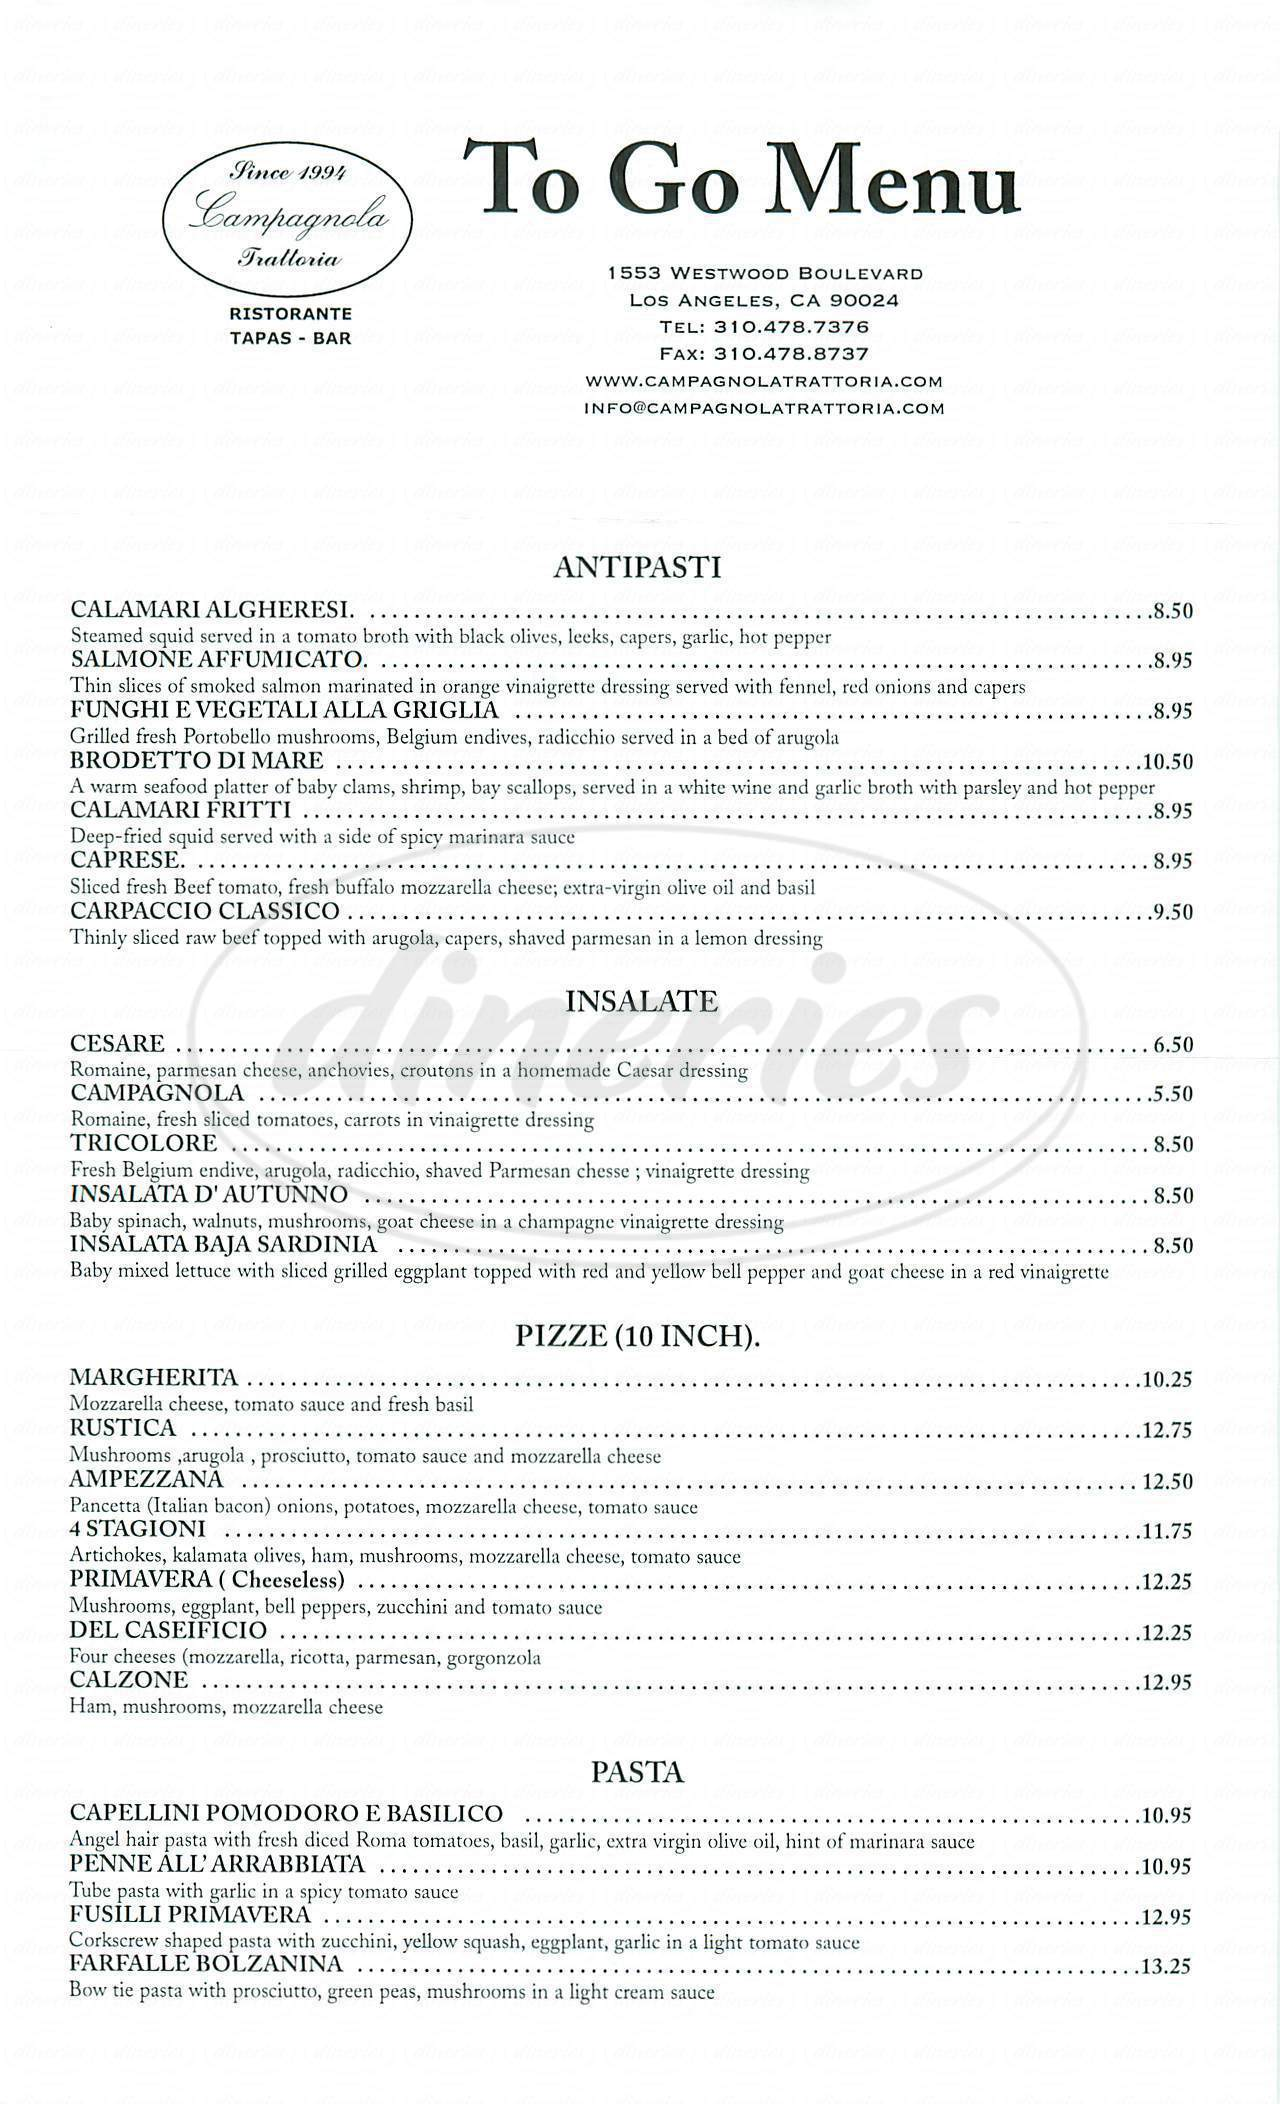 menu for Campagnola Trattoria